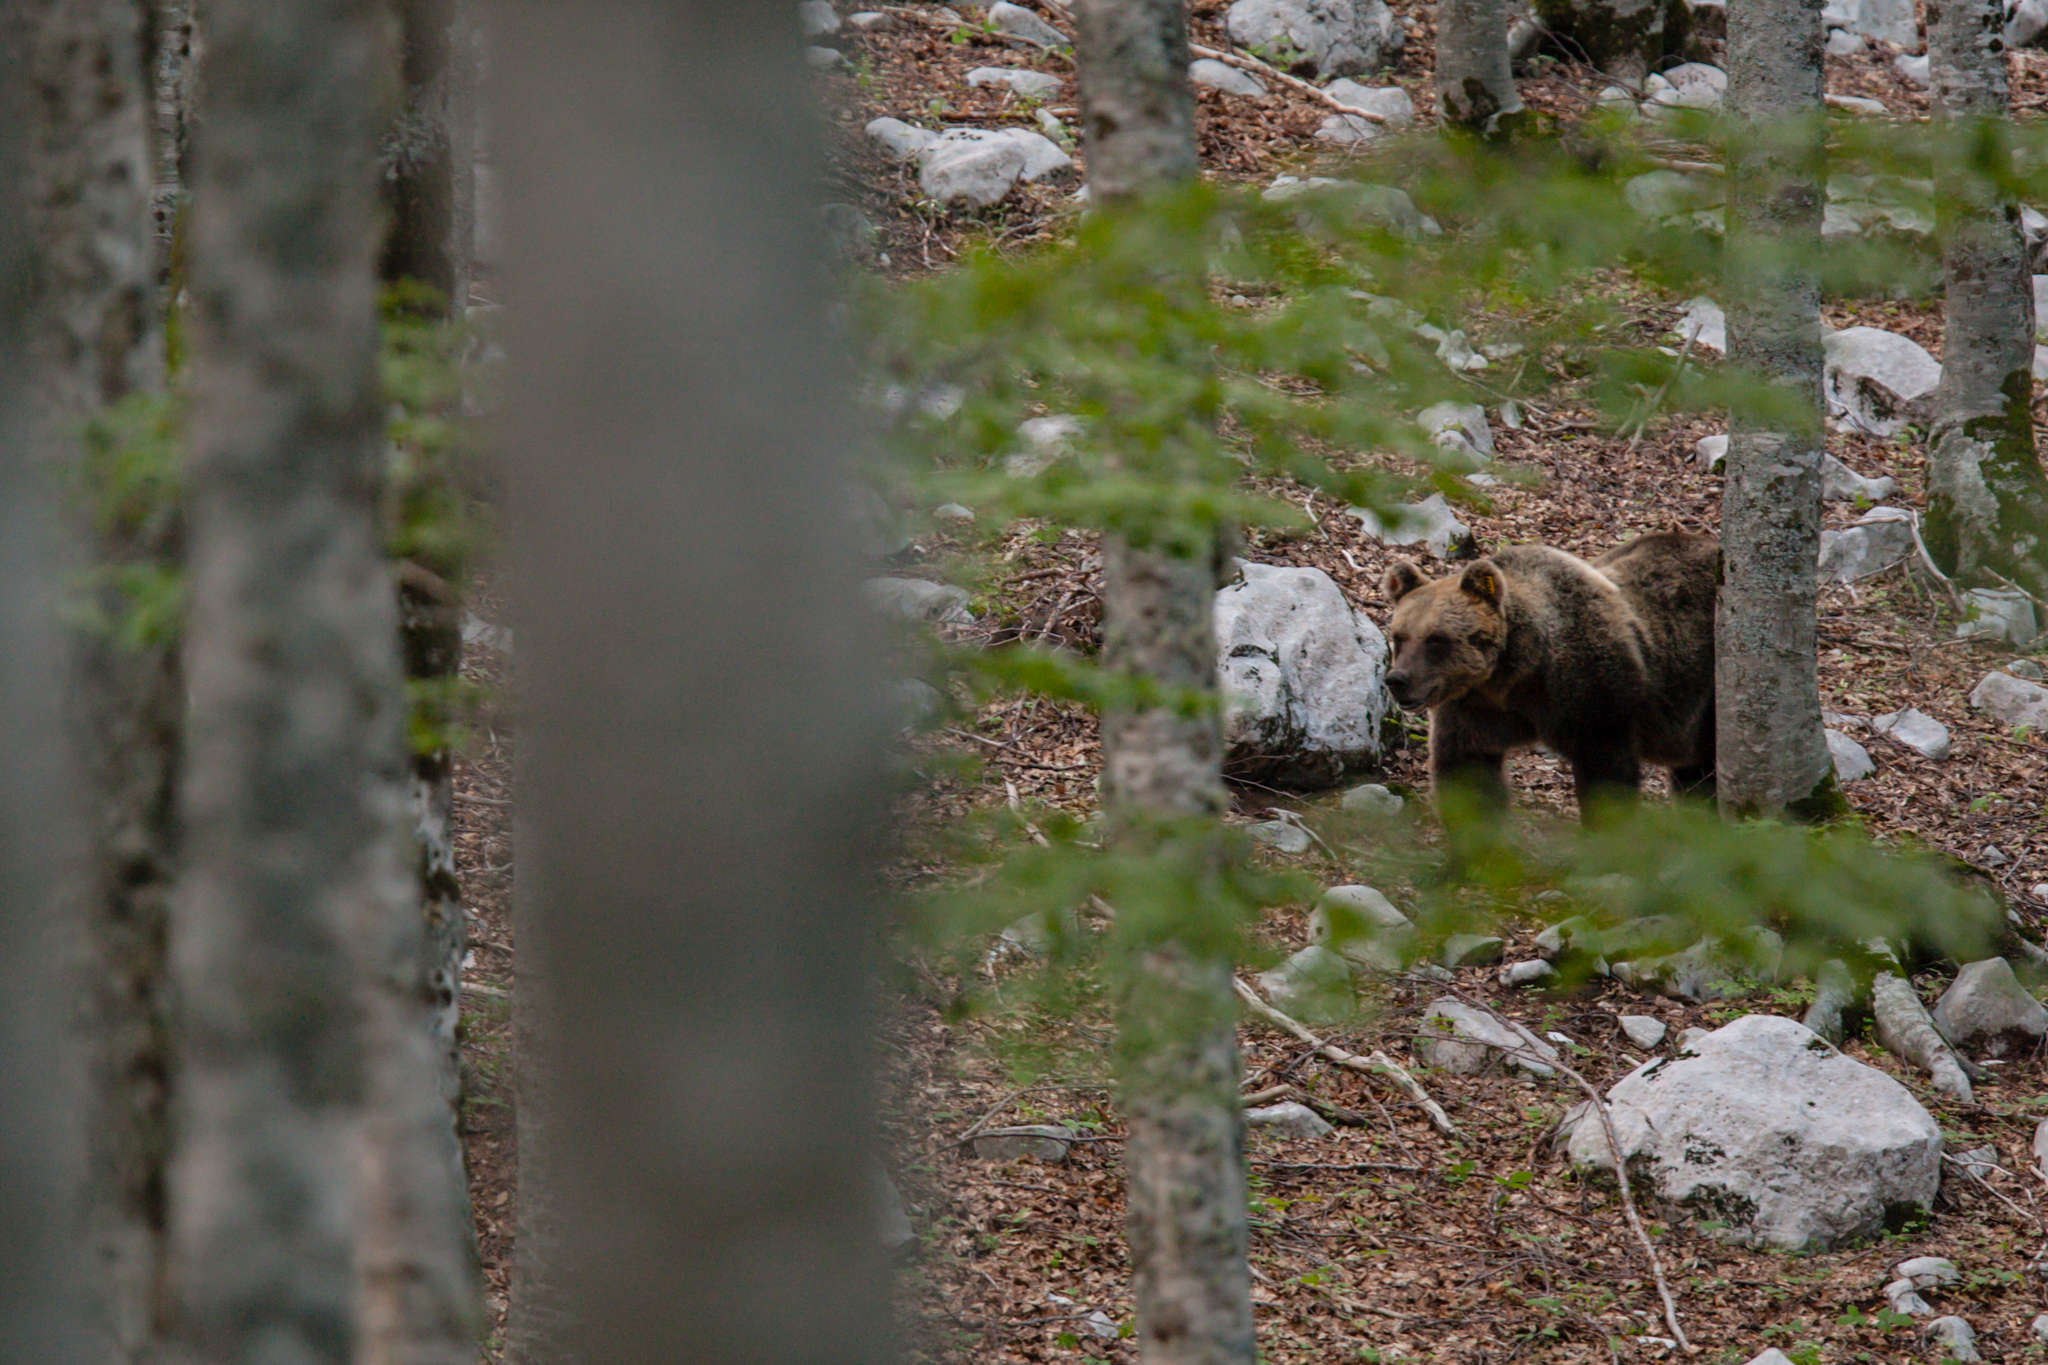 The Marsican brown bear population of the Central Apennines currently stands at around 60 (including newborn animals).